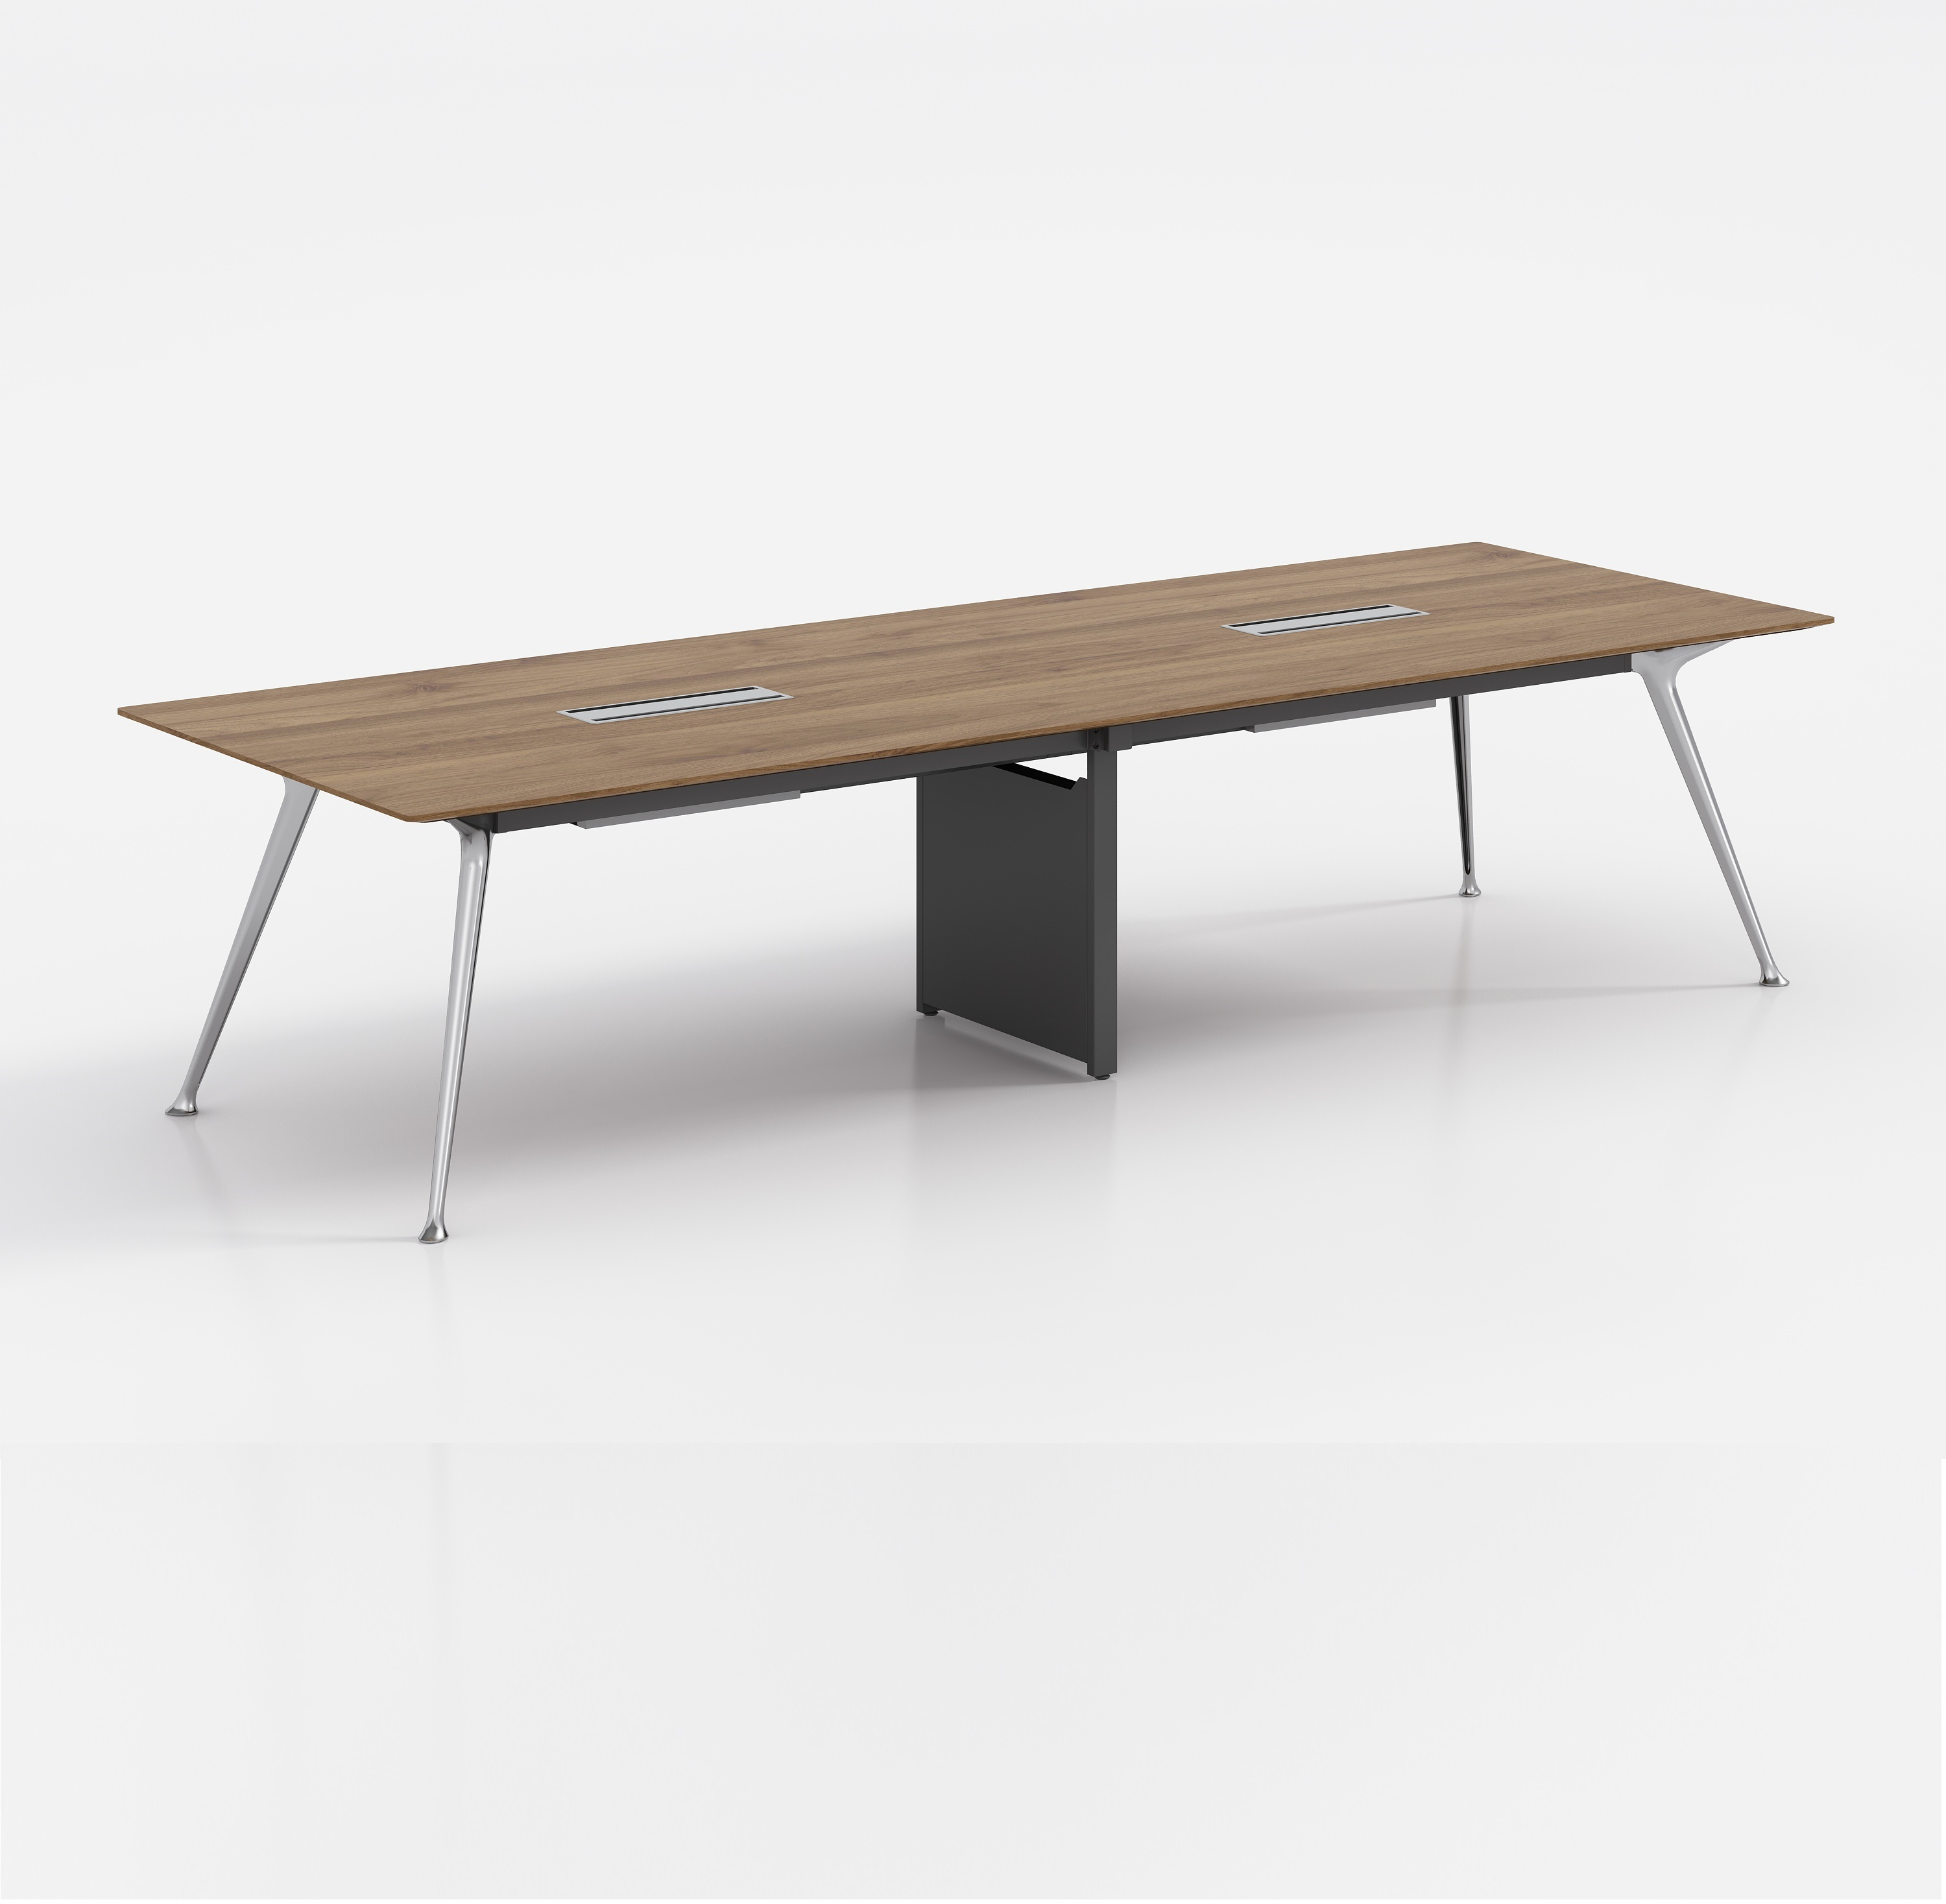 Shinny Aluminum Leg Office Furniture Meeting Table Walnut veneer MDF Conference Table and Chairs Set Conference Furniture